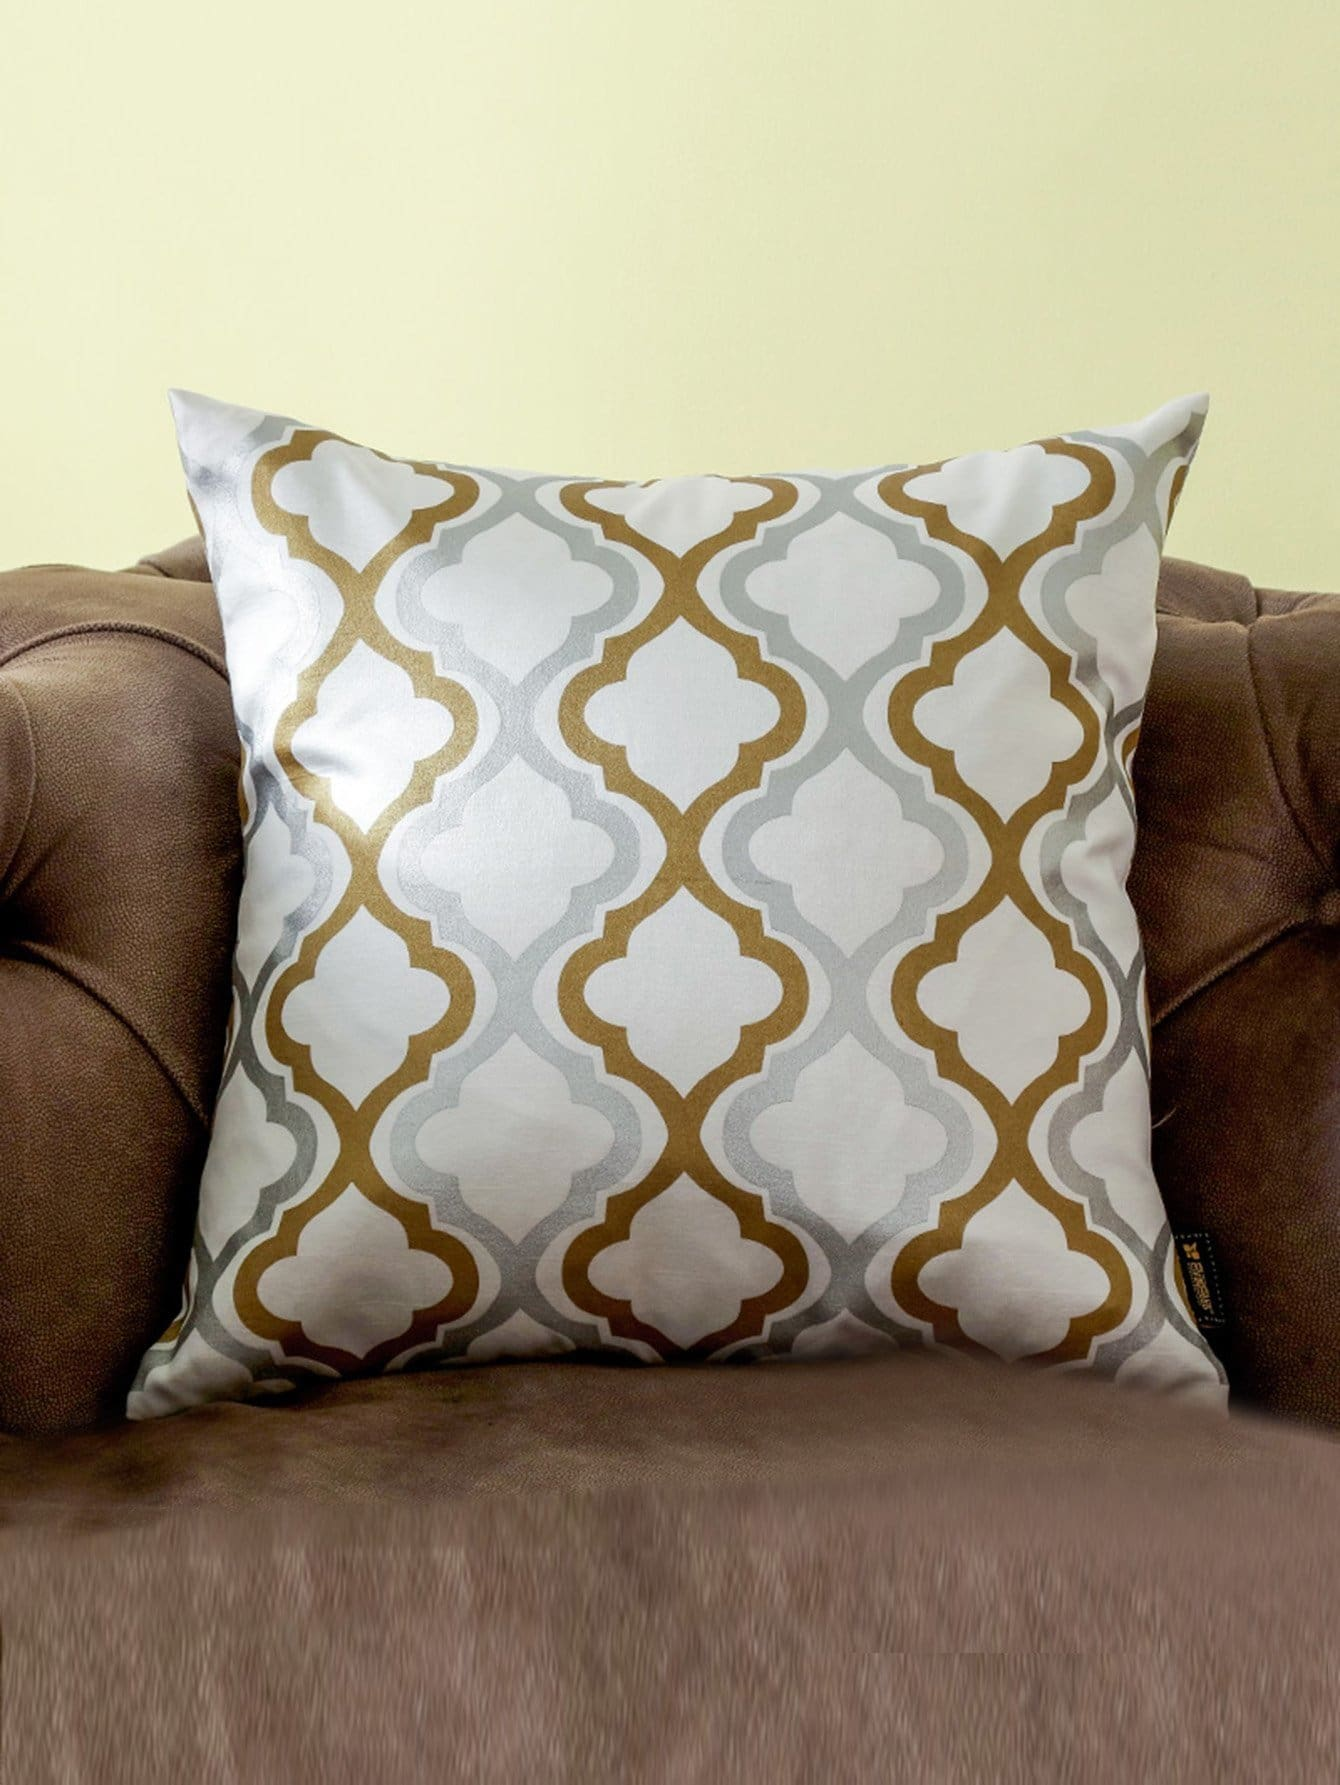 Moroccan Print Cushion Cover - Decorative Pillows